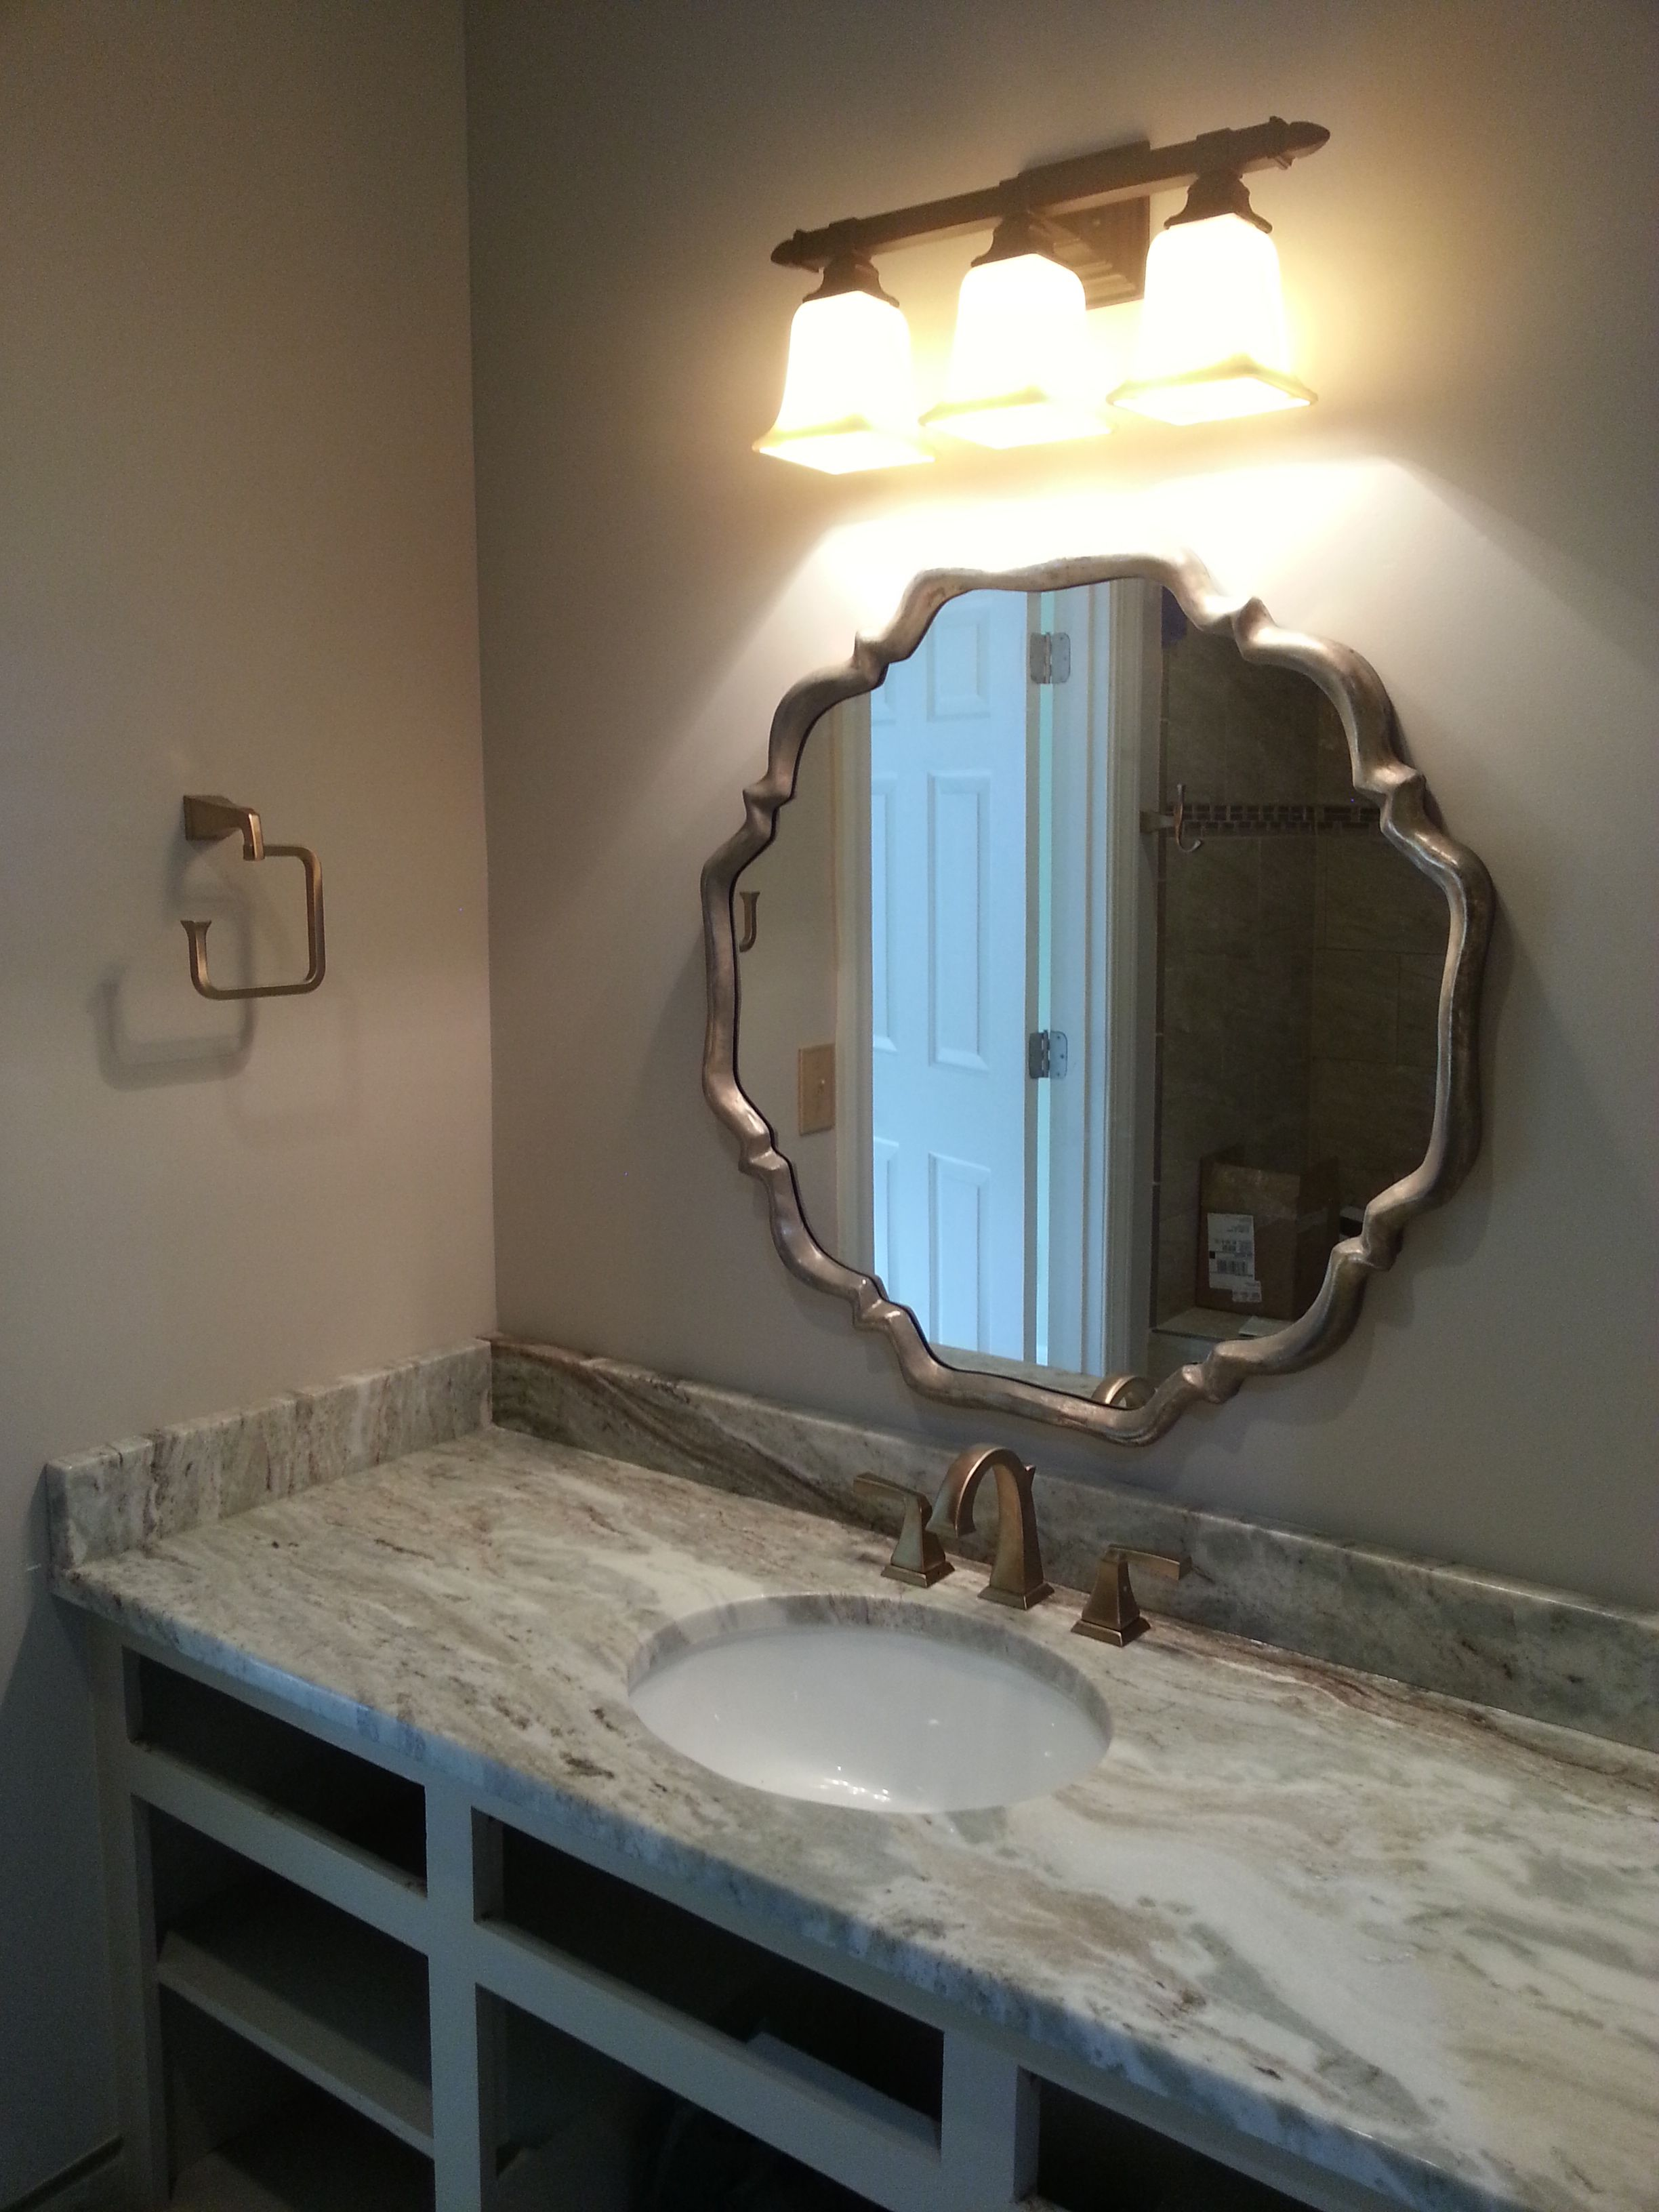 [Ocean Beige quartzite bathroom countertop.]